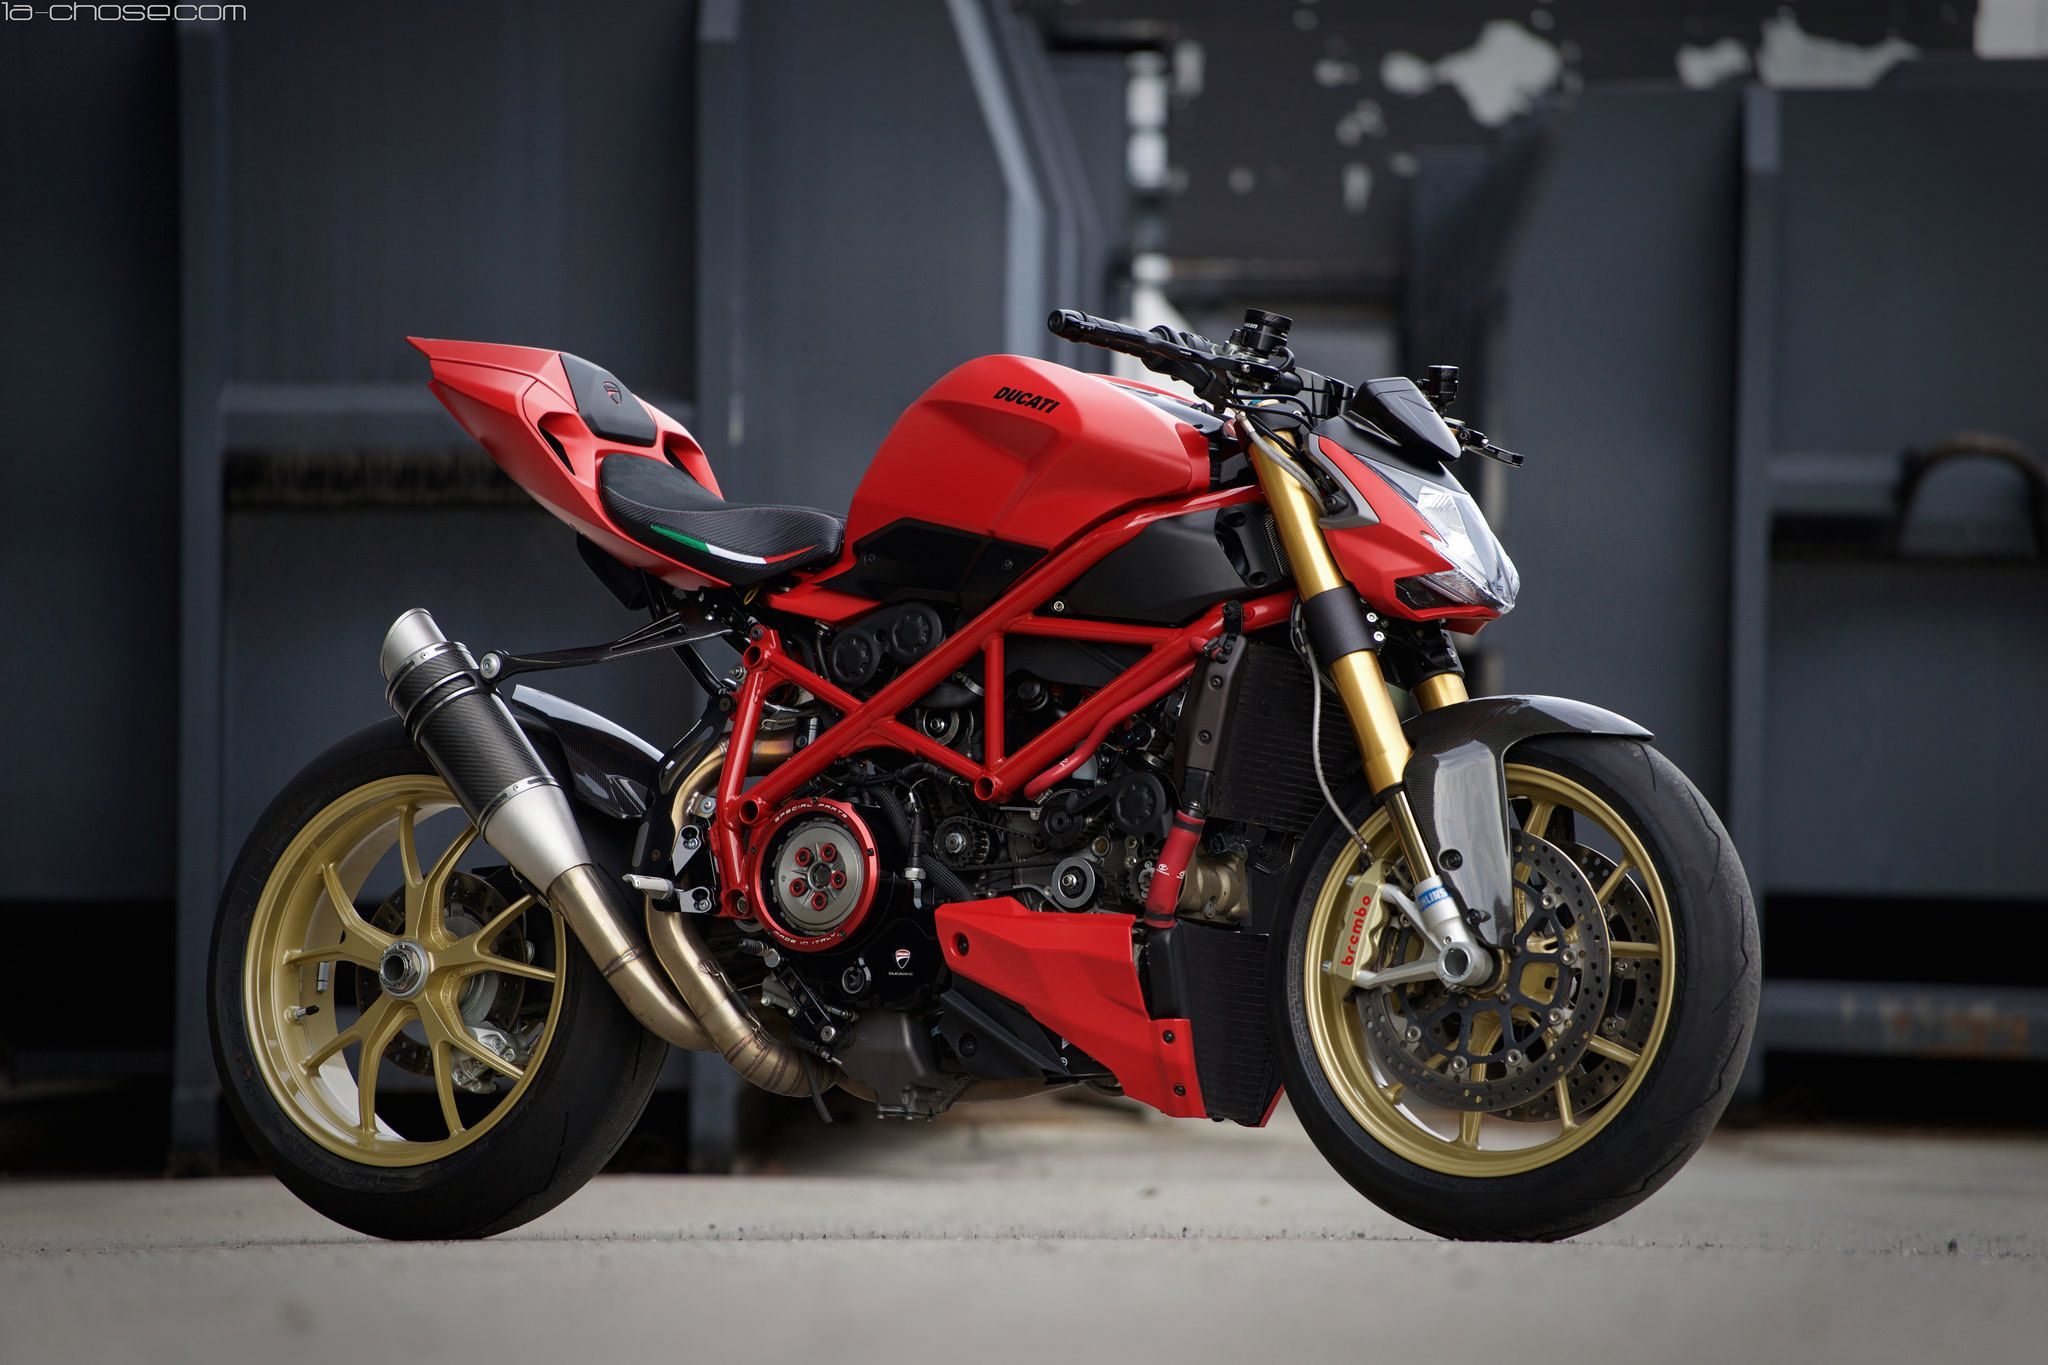 ducati streetfighter 848 ducati motorbikes and cars. Black Bedroom Furniture Sets. Home Design Ideas